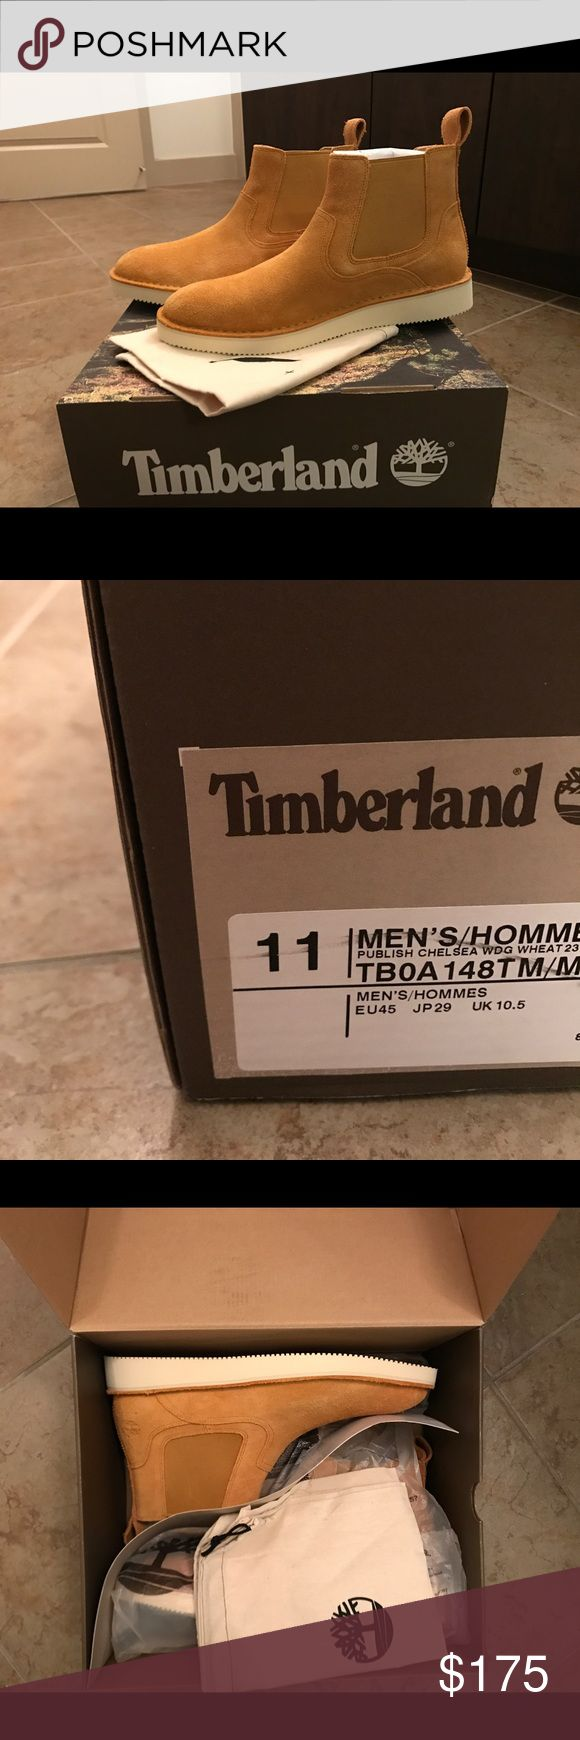 Men's Timberland Chelsea Boots Brand new, never-worn, Timberland Publish Brand Chelsea boots. Size 11, fits size 12 (men). Timberland Shoes Boots